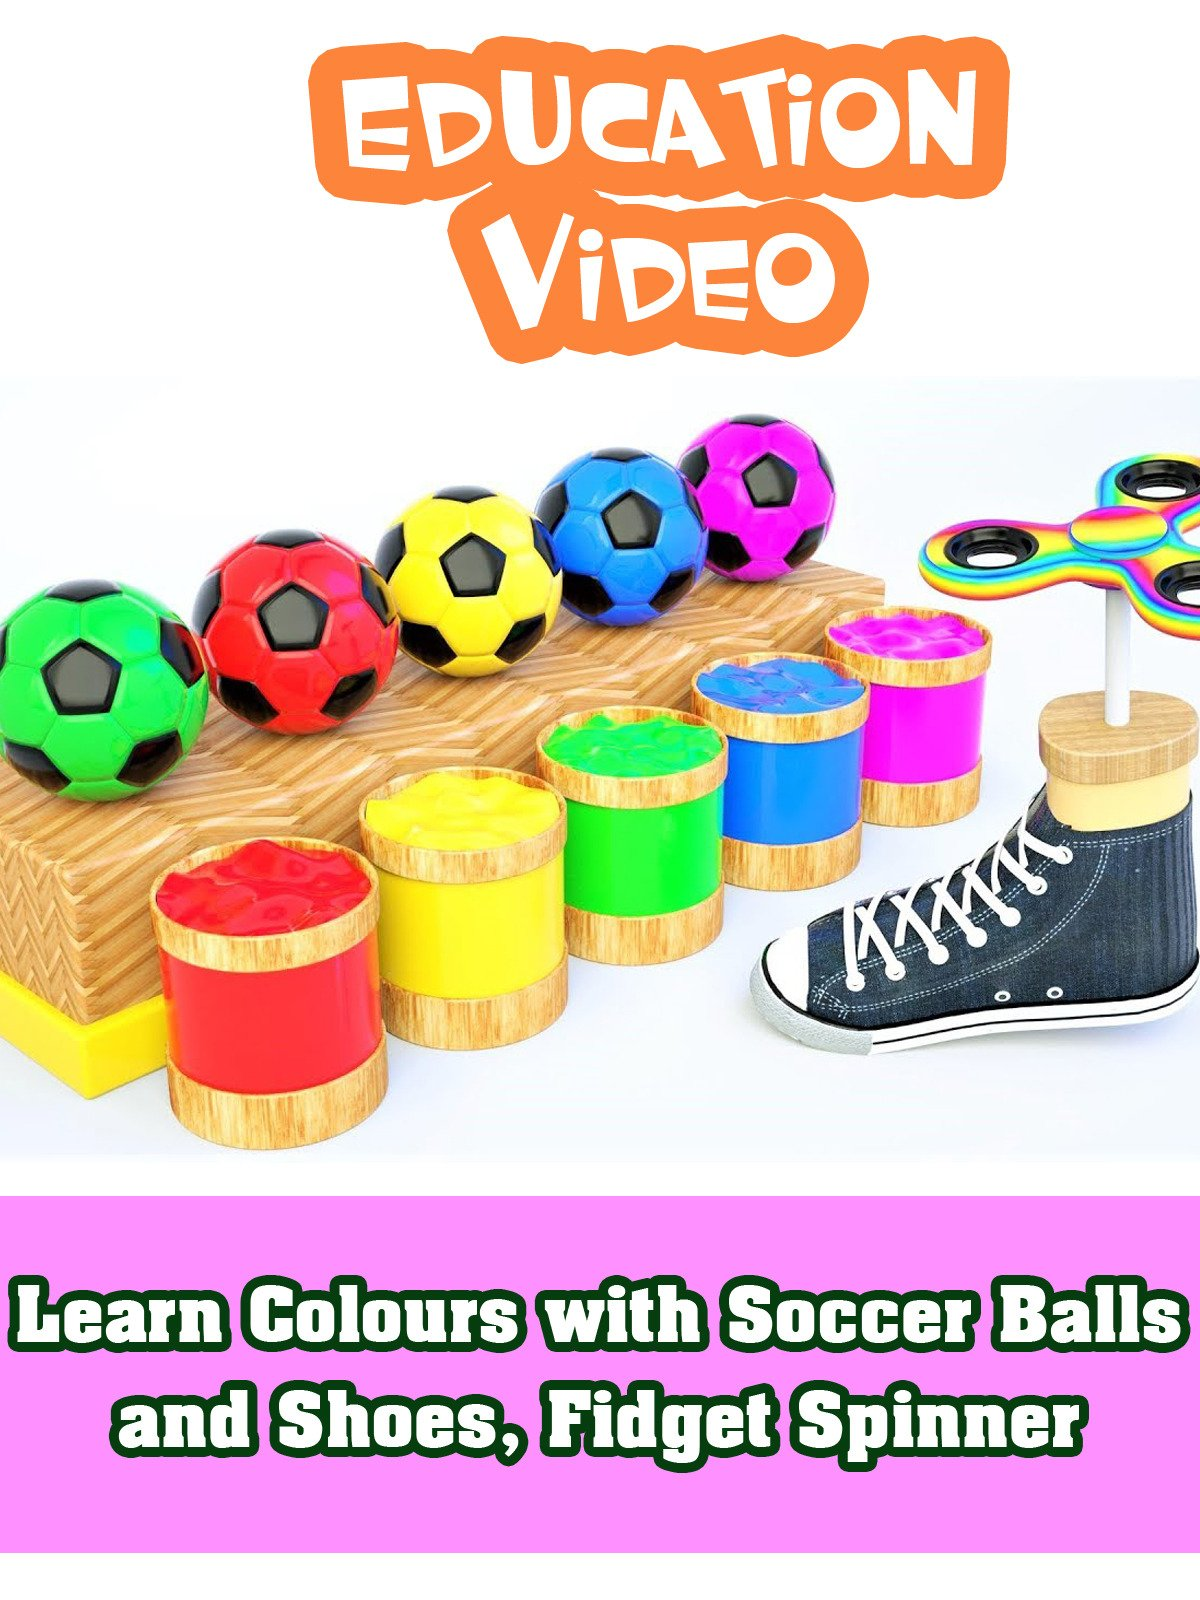 Learn Colours with Soccer Balls and Shoes, Fidget Spinner